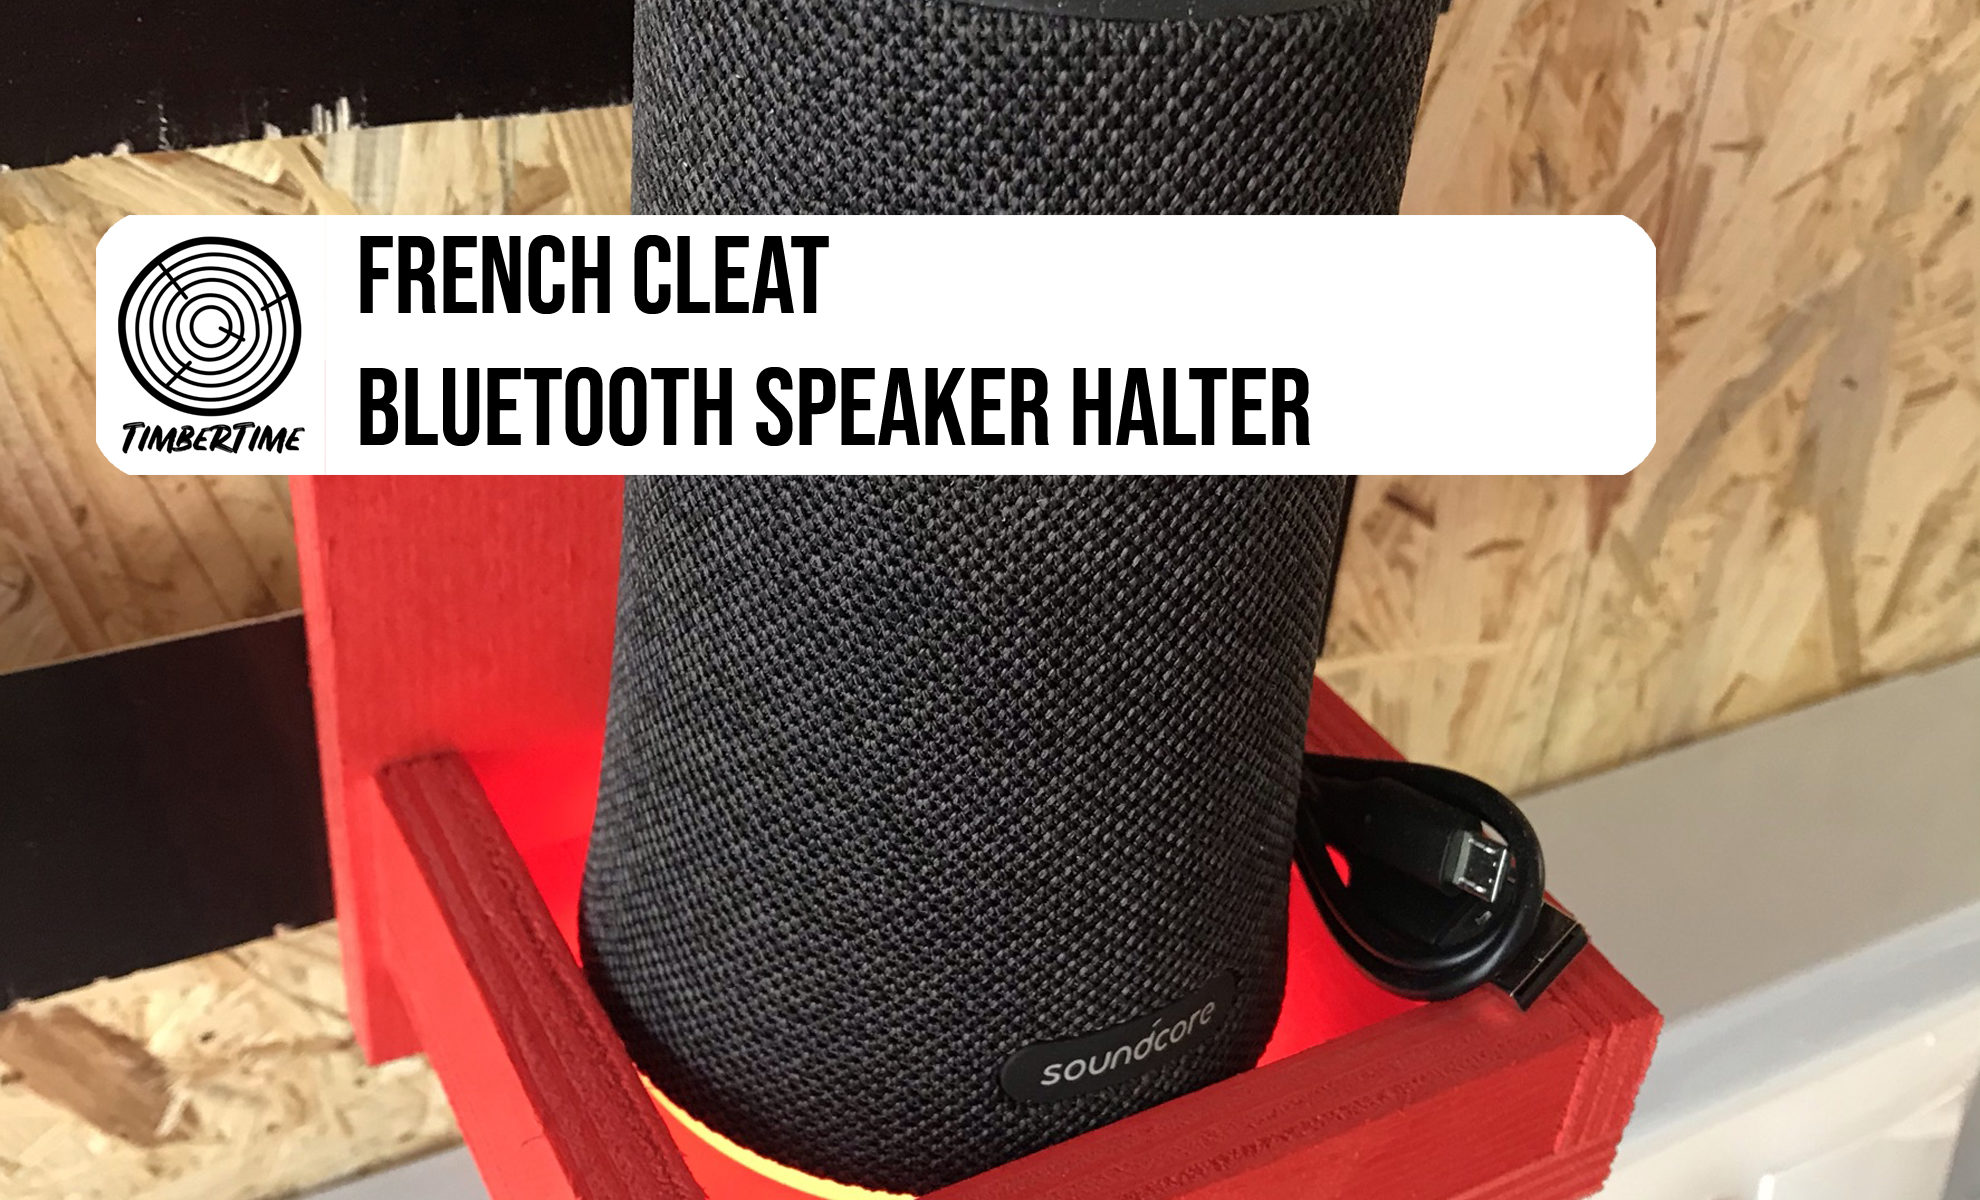 French Cleat Bluetooth Speaker